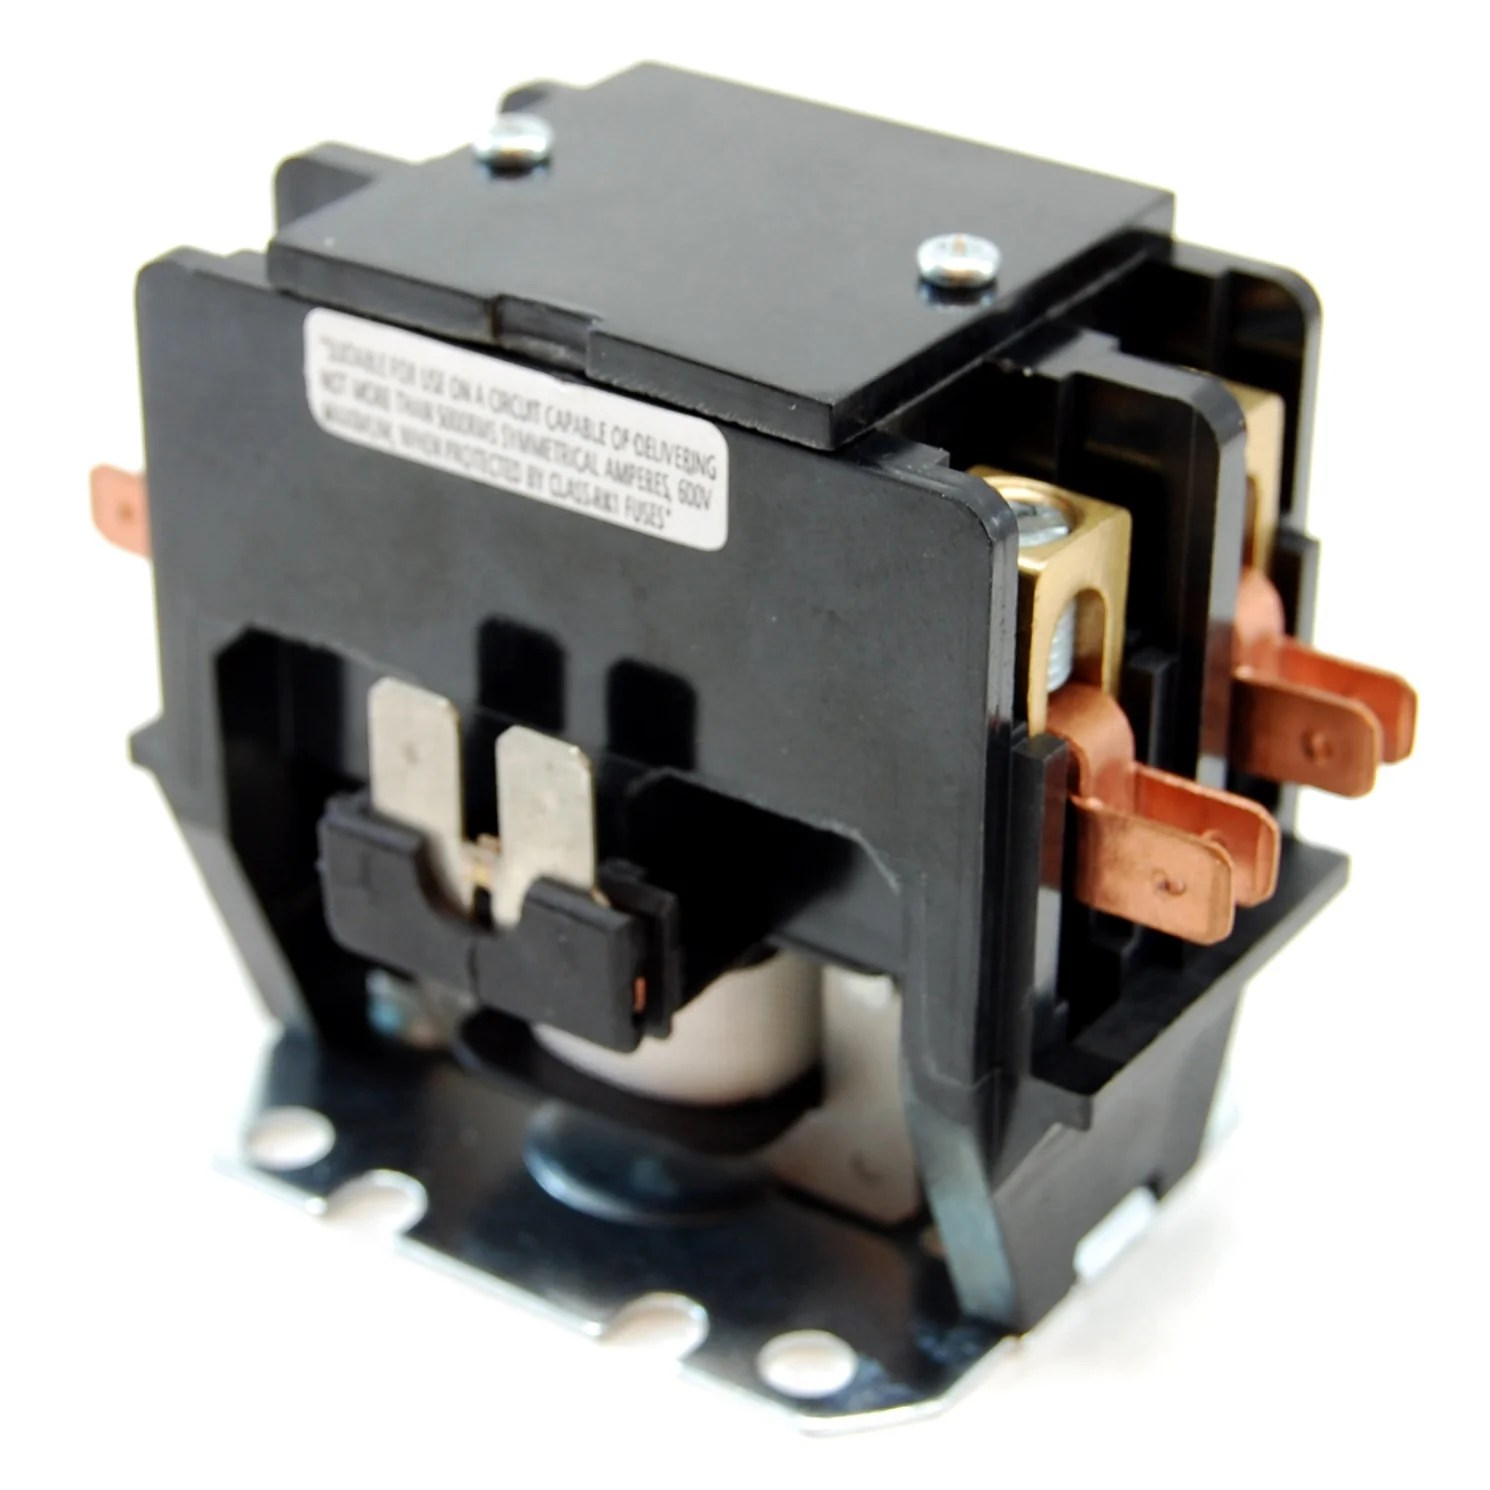 hight resolution of 50a 250v dpst contactor 220 240v ac coil the electric brewery 240v contactor wiring